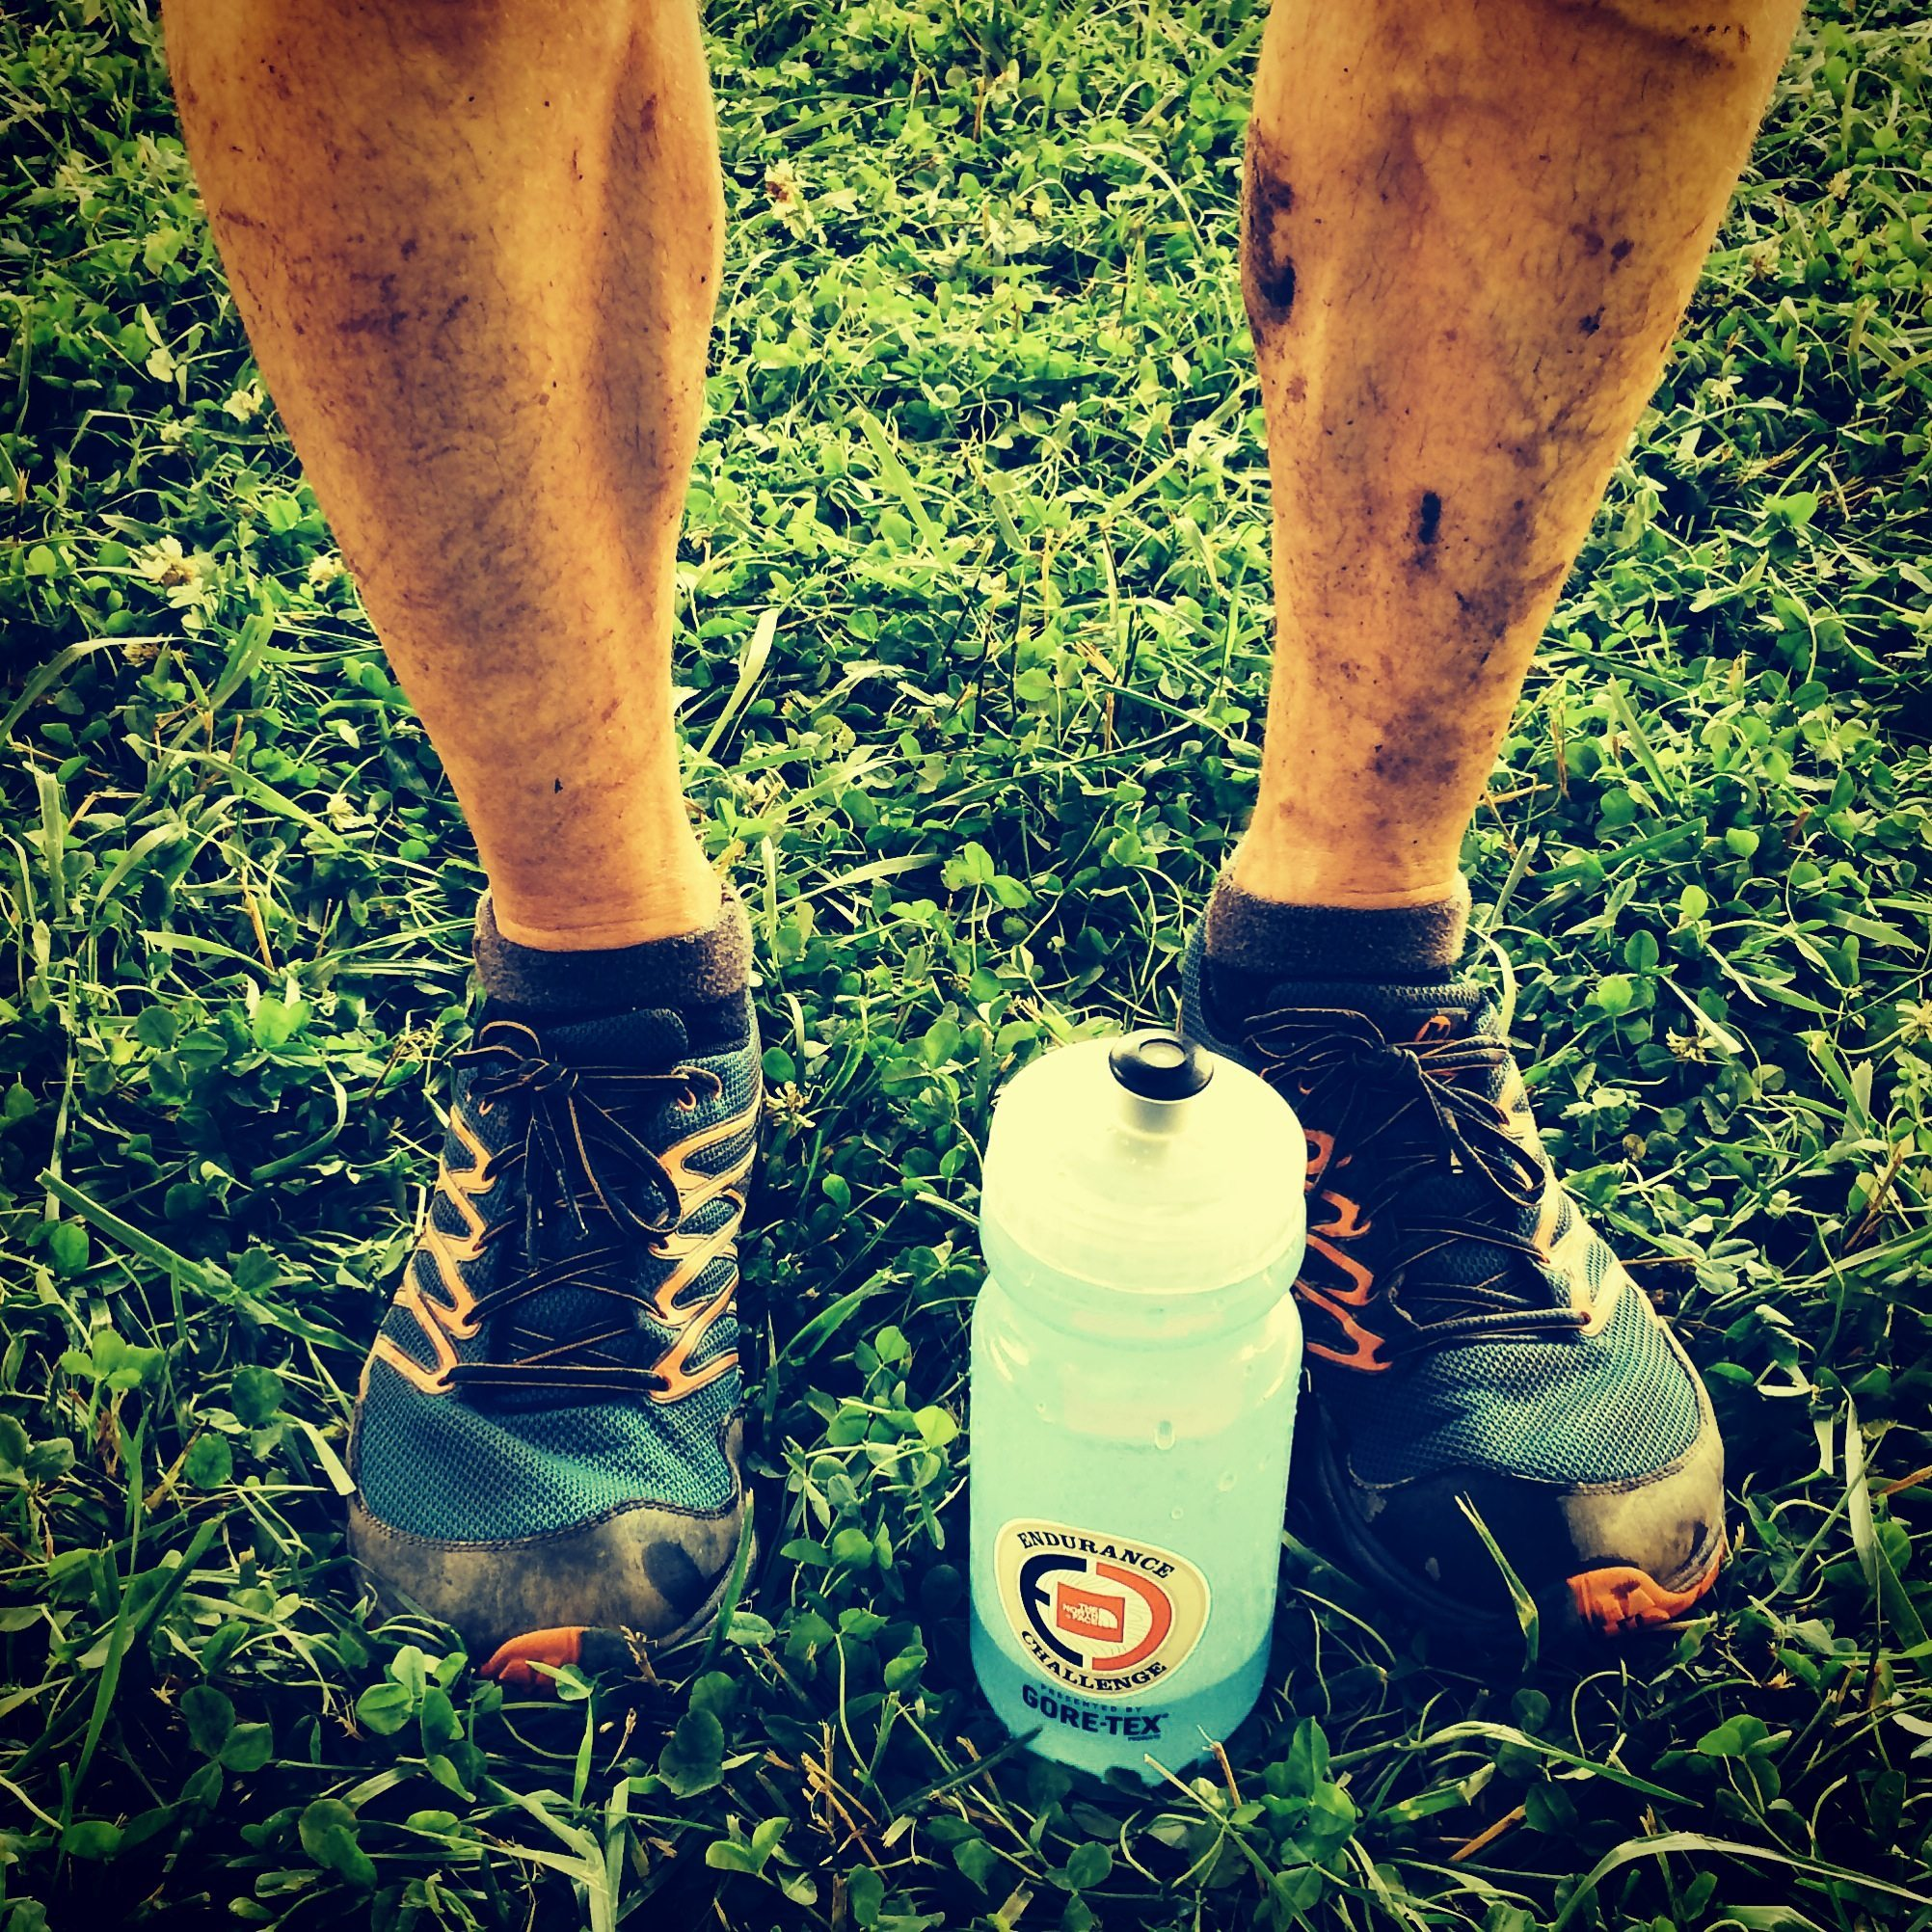 Post-race Happy Feet in the Merrell Bare Access Trail and Injinji TRAIL 2.0